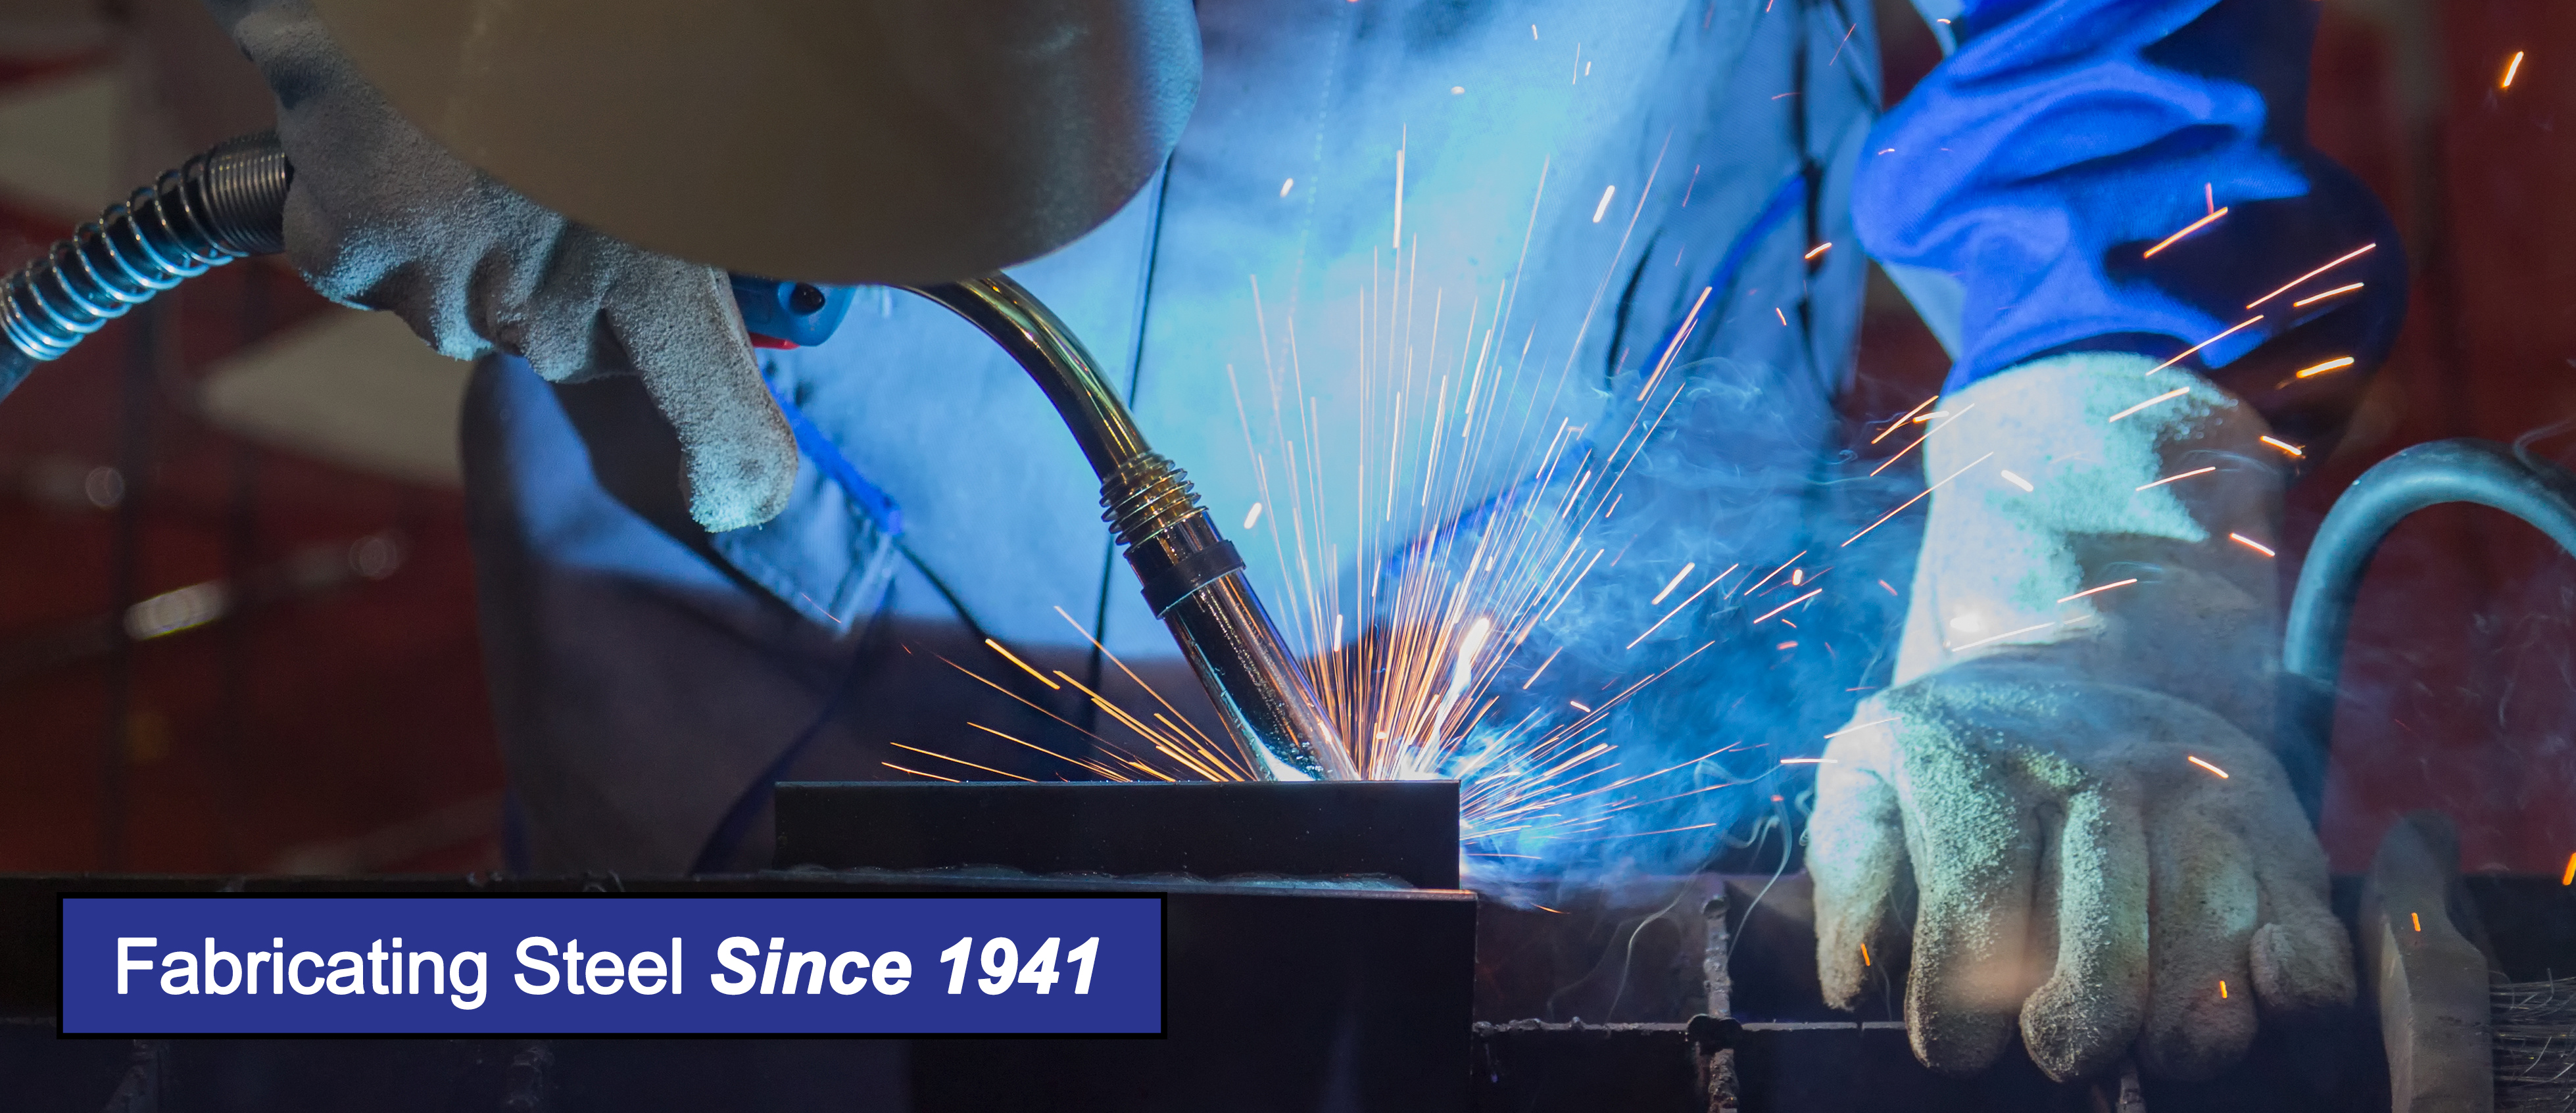 Midstate Steel | Fabricating Steel Since 1941